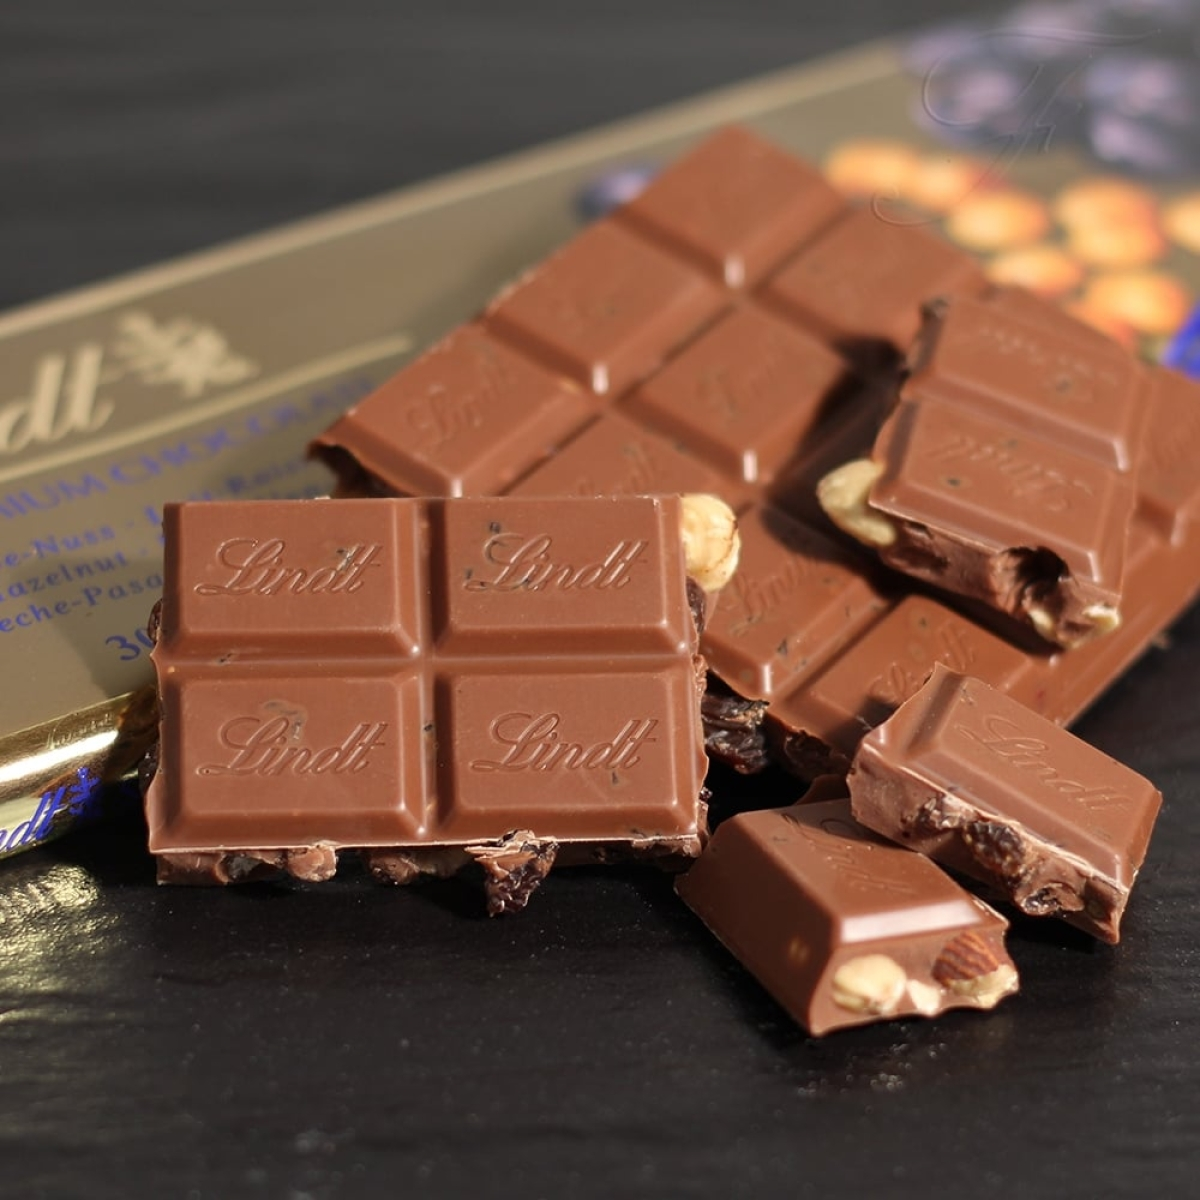 Chocolate Day Today: Have ageless choco bar with bar